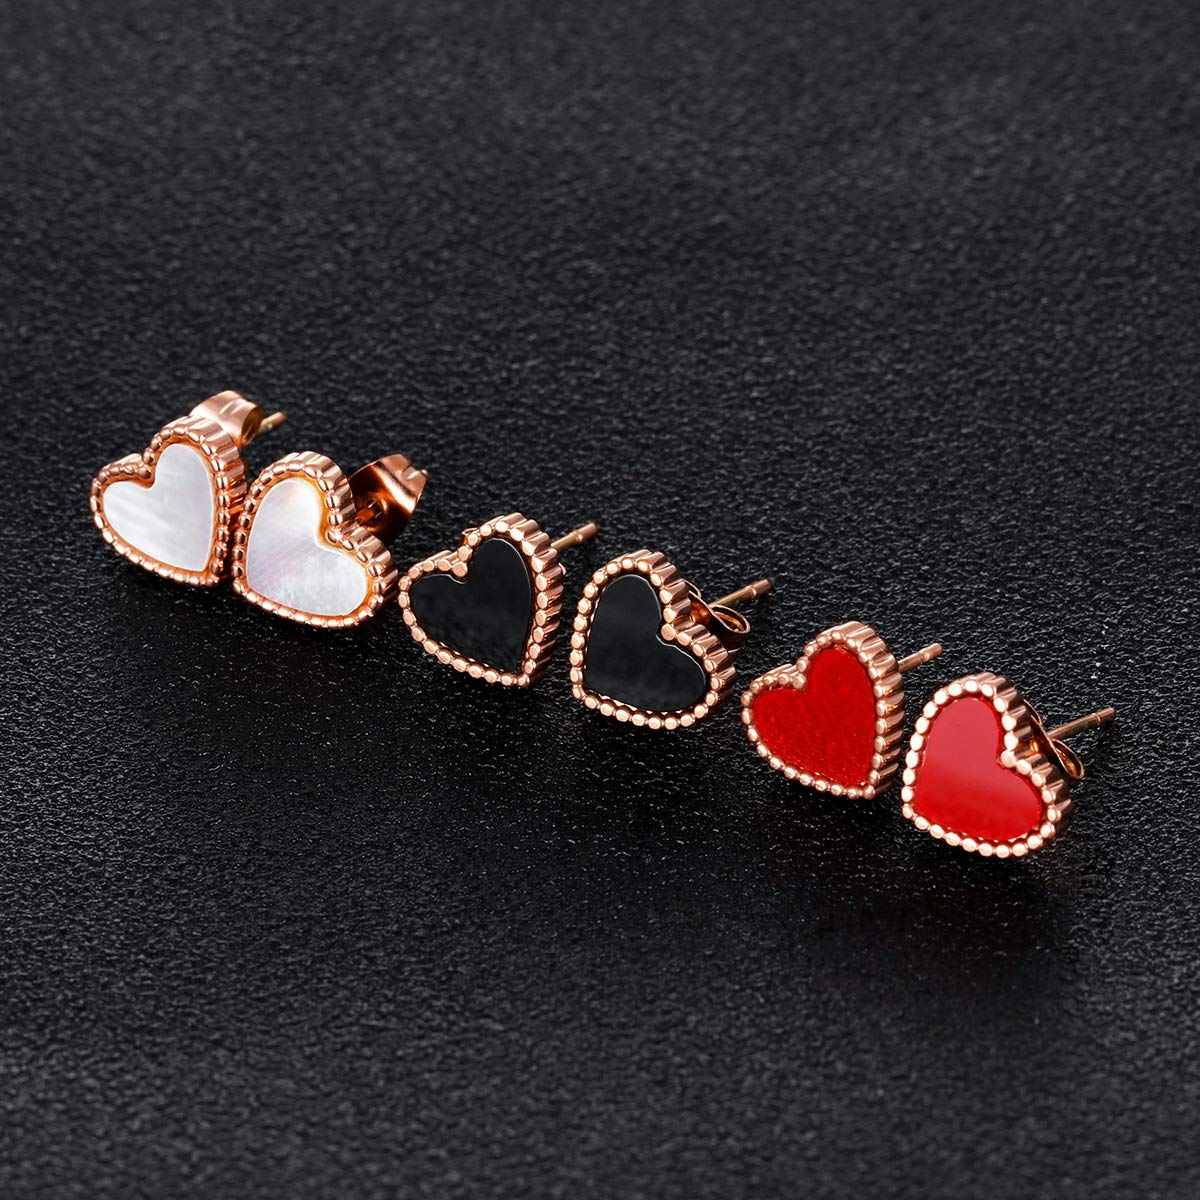 Stud Earring for Women,Rose Gold Stud Hypoallergenic Earring Studs for Girls Gift Tiny Stainless Steel Stud #3 Heart, White Shell